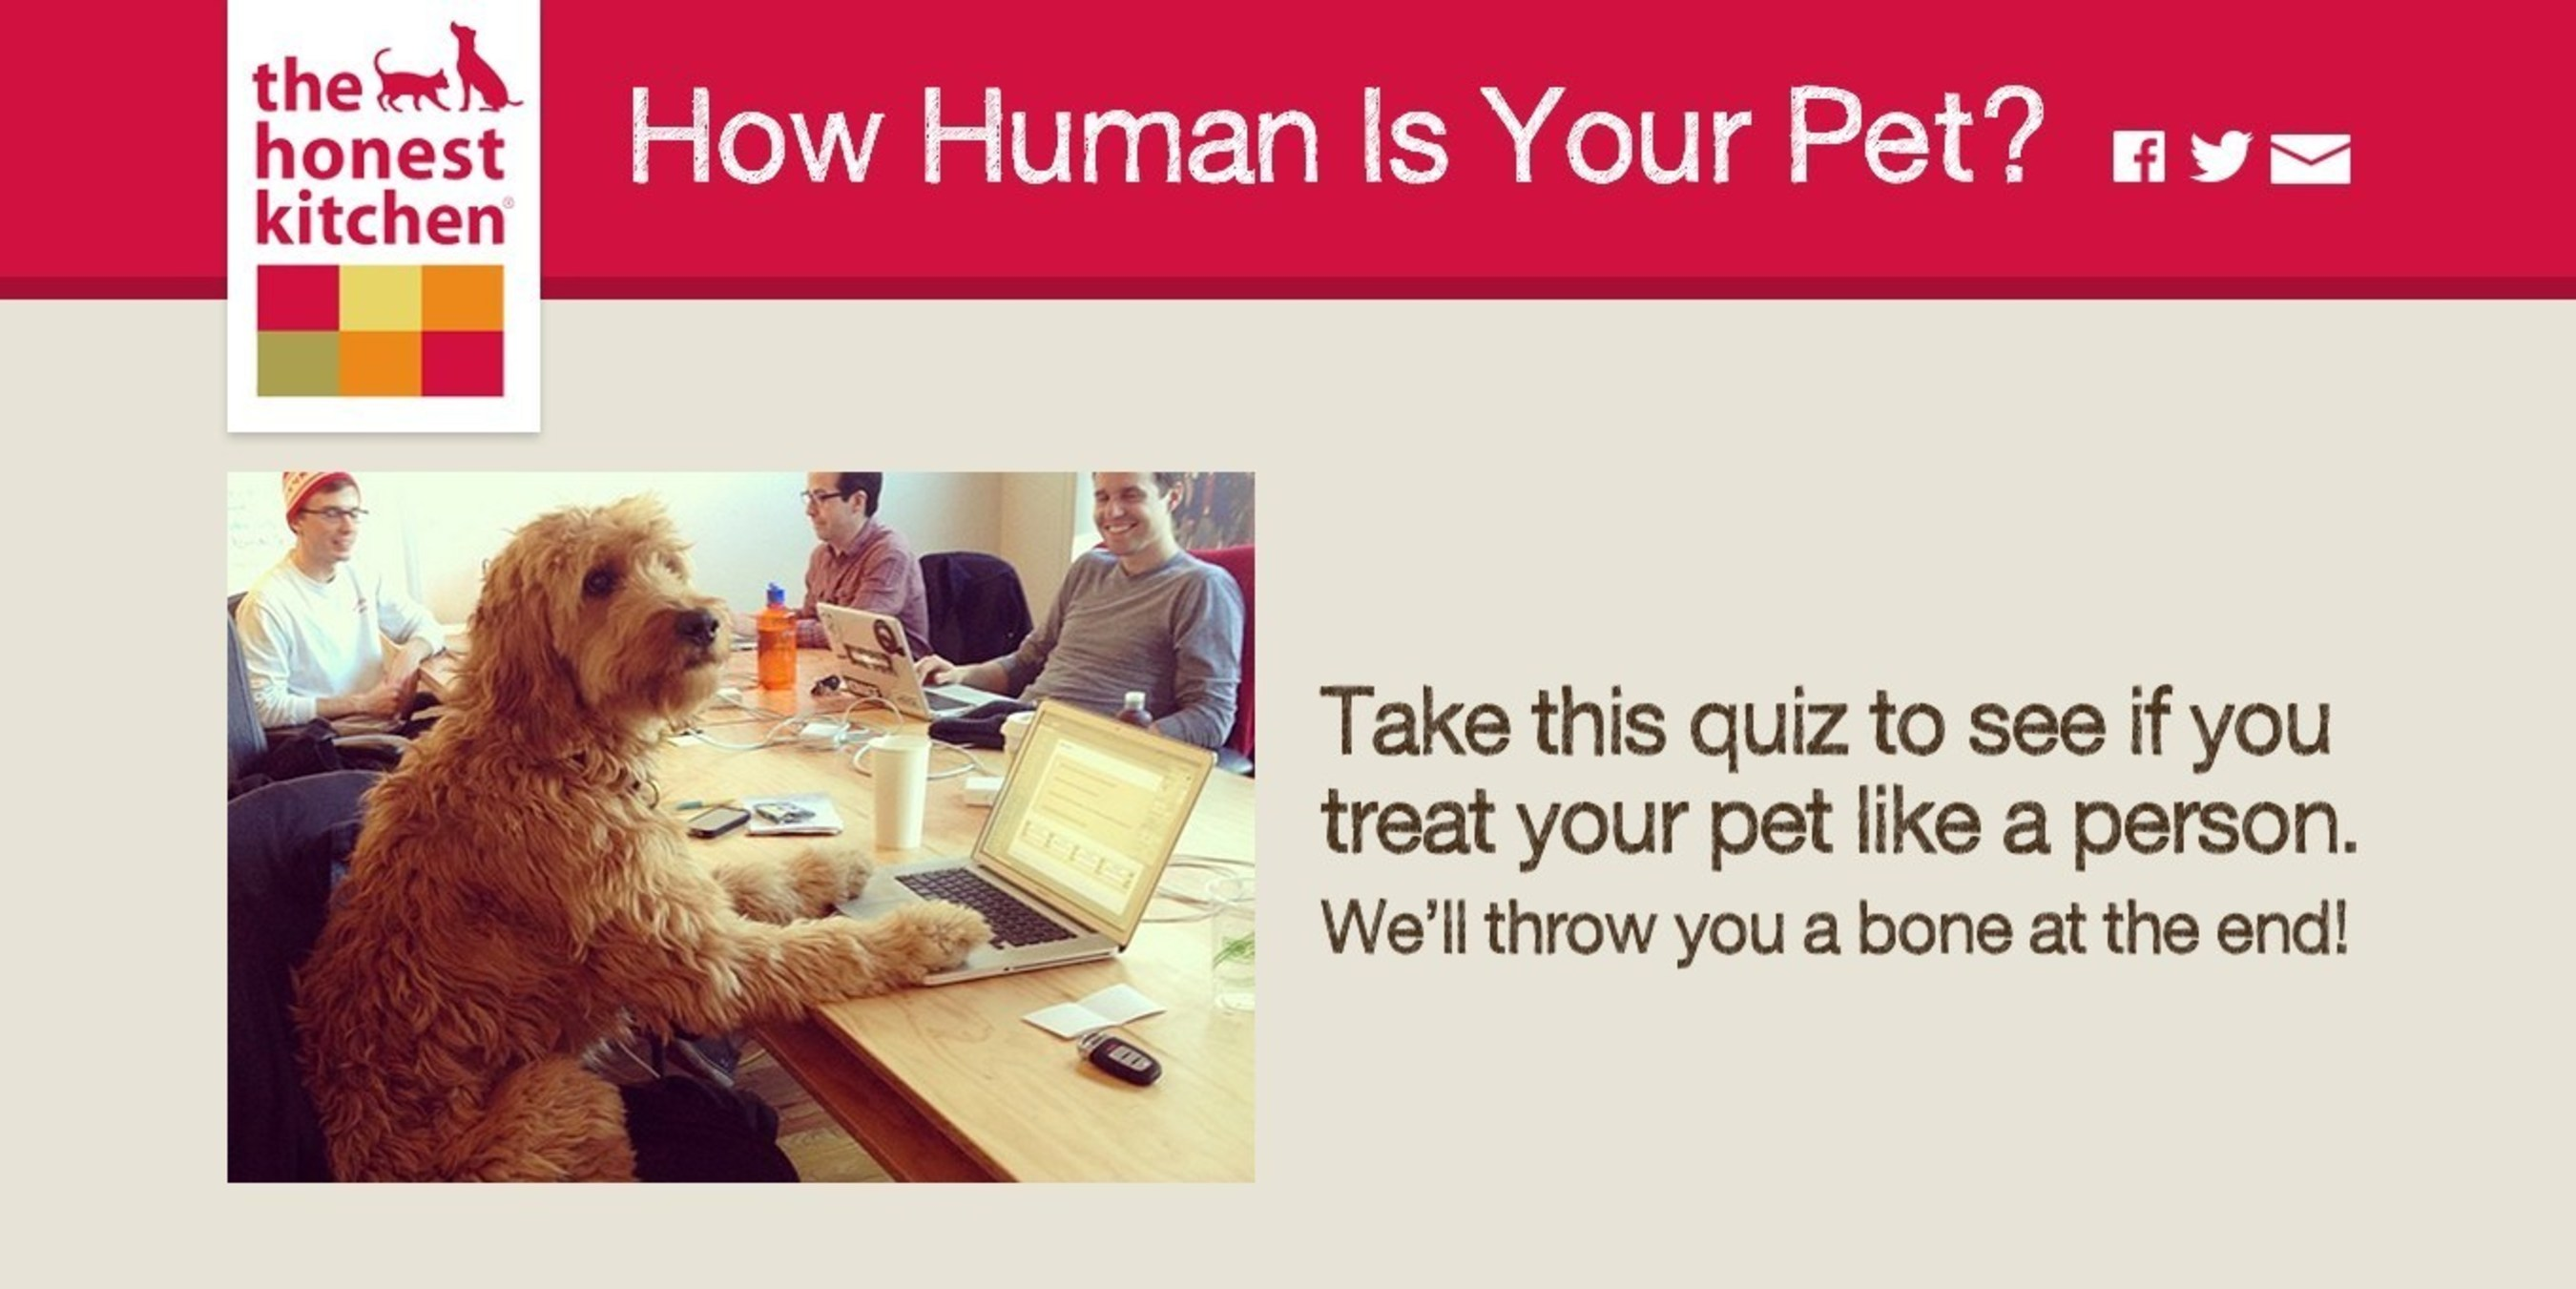 the honest kitchen good quality utensils asks how human is your pet wants to know answer and